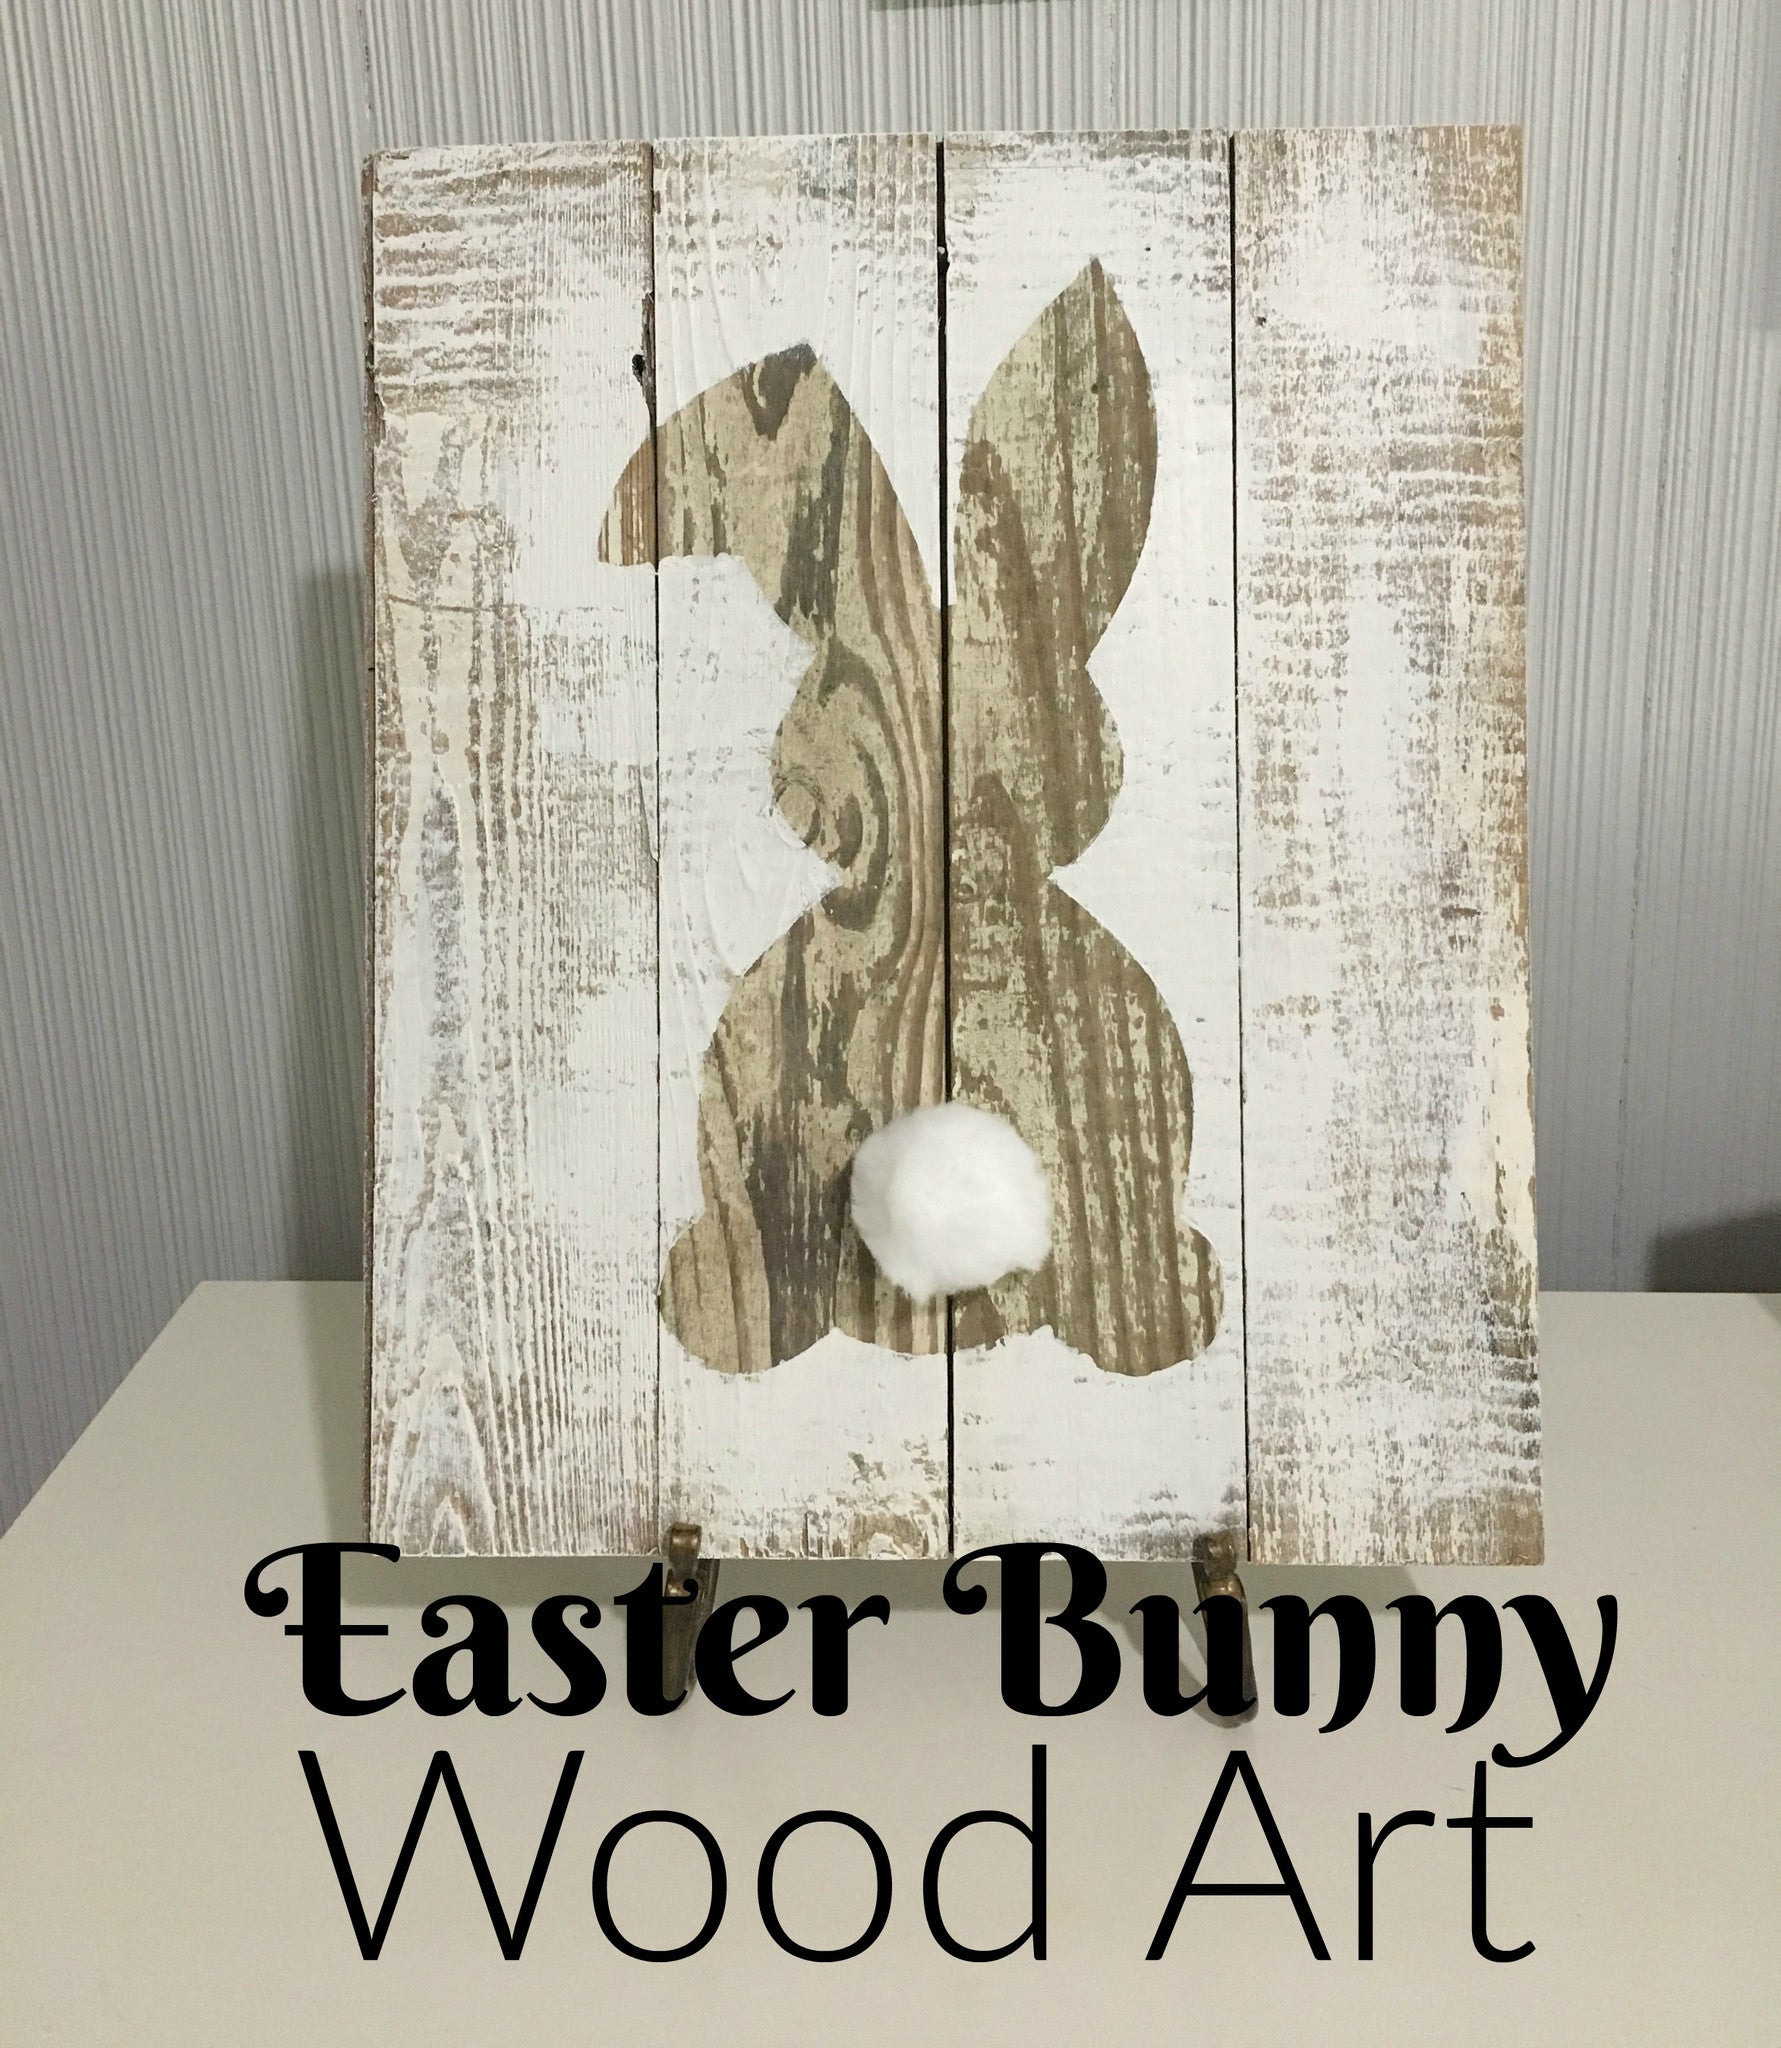 Easter Bunny Wood Art